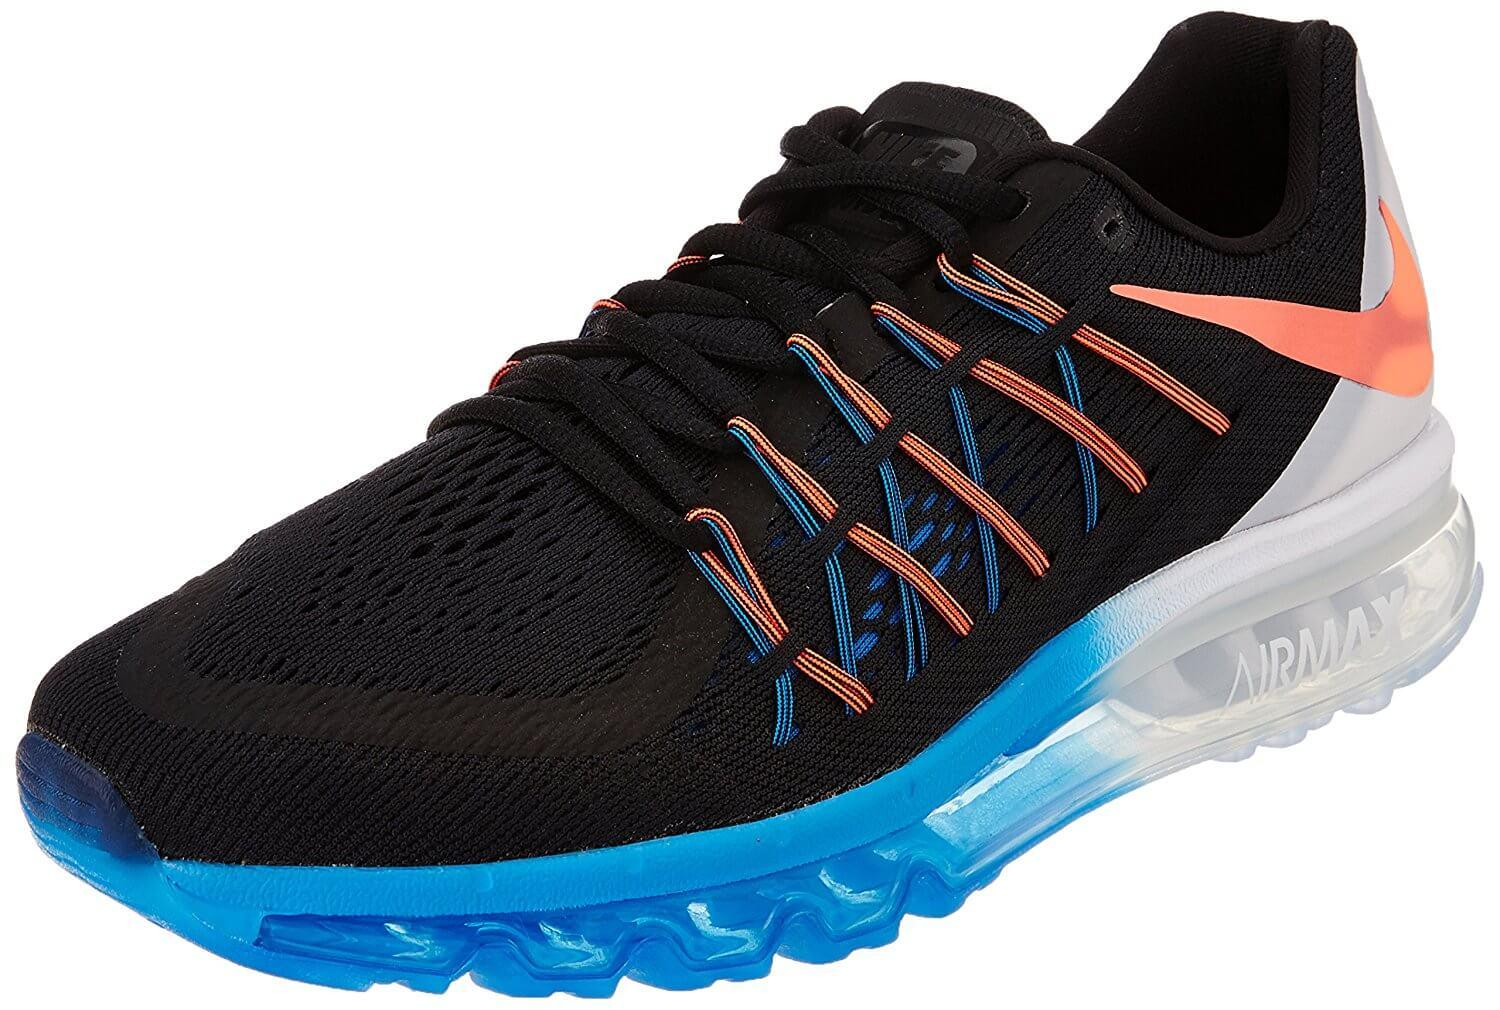 best service c2102 29aa6 Nike Air Max 2015 Fullyed - To Buy or Not in May 2019